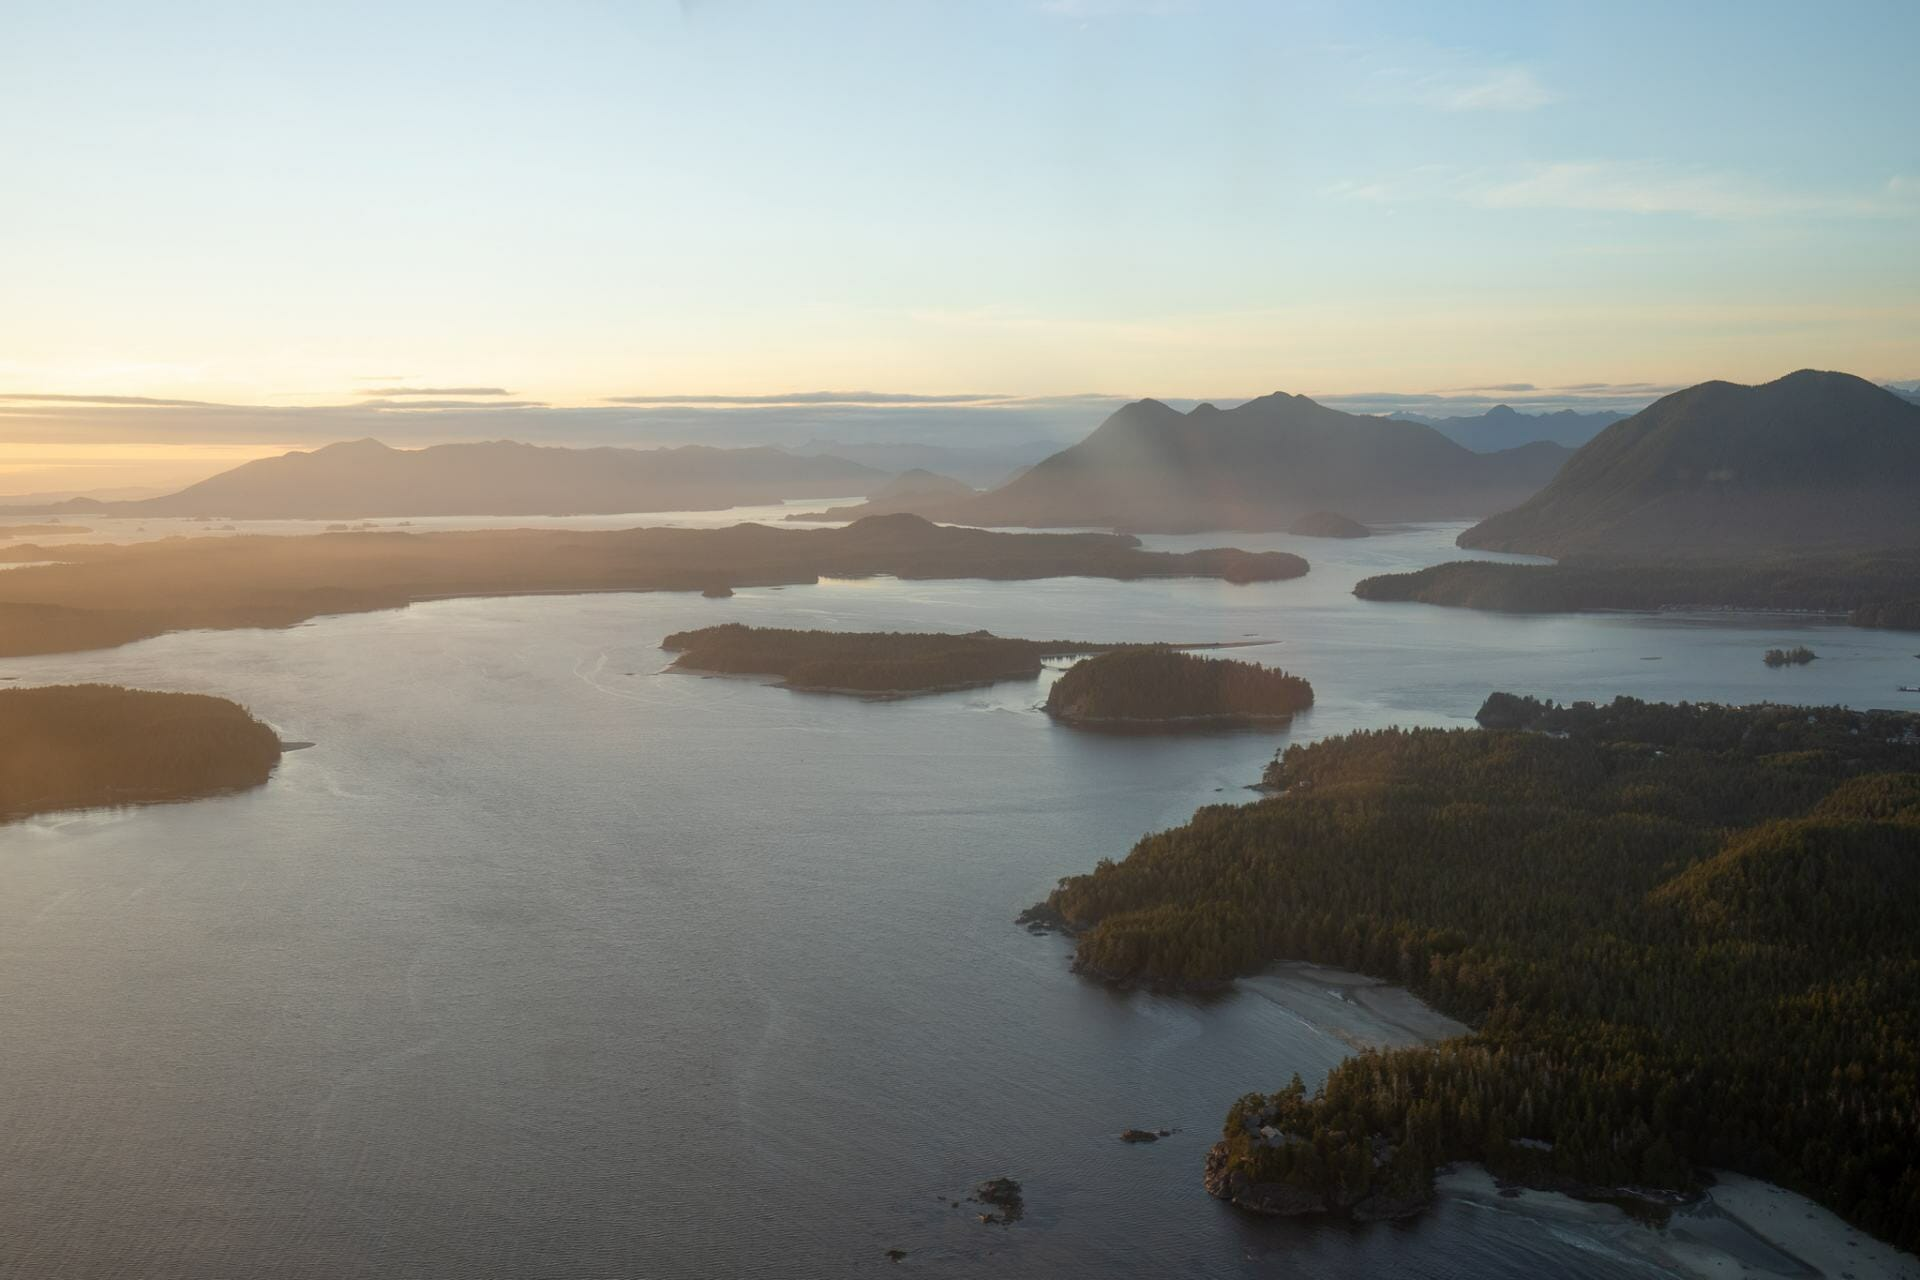 View of Tofino from the air